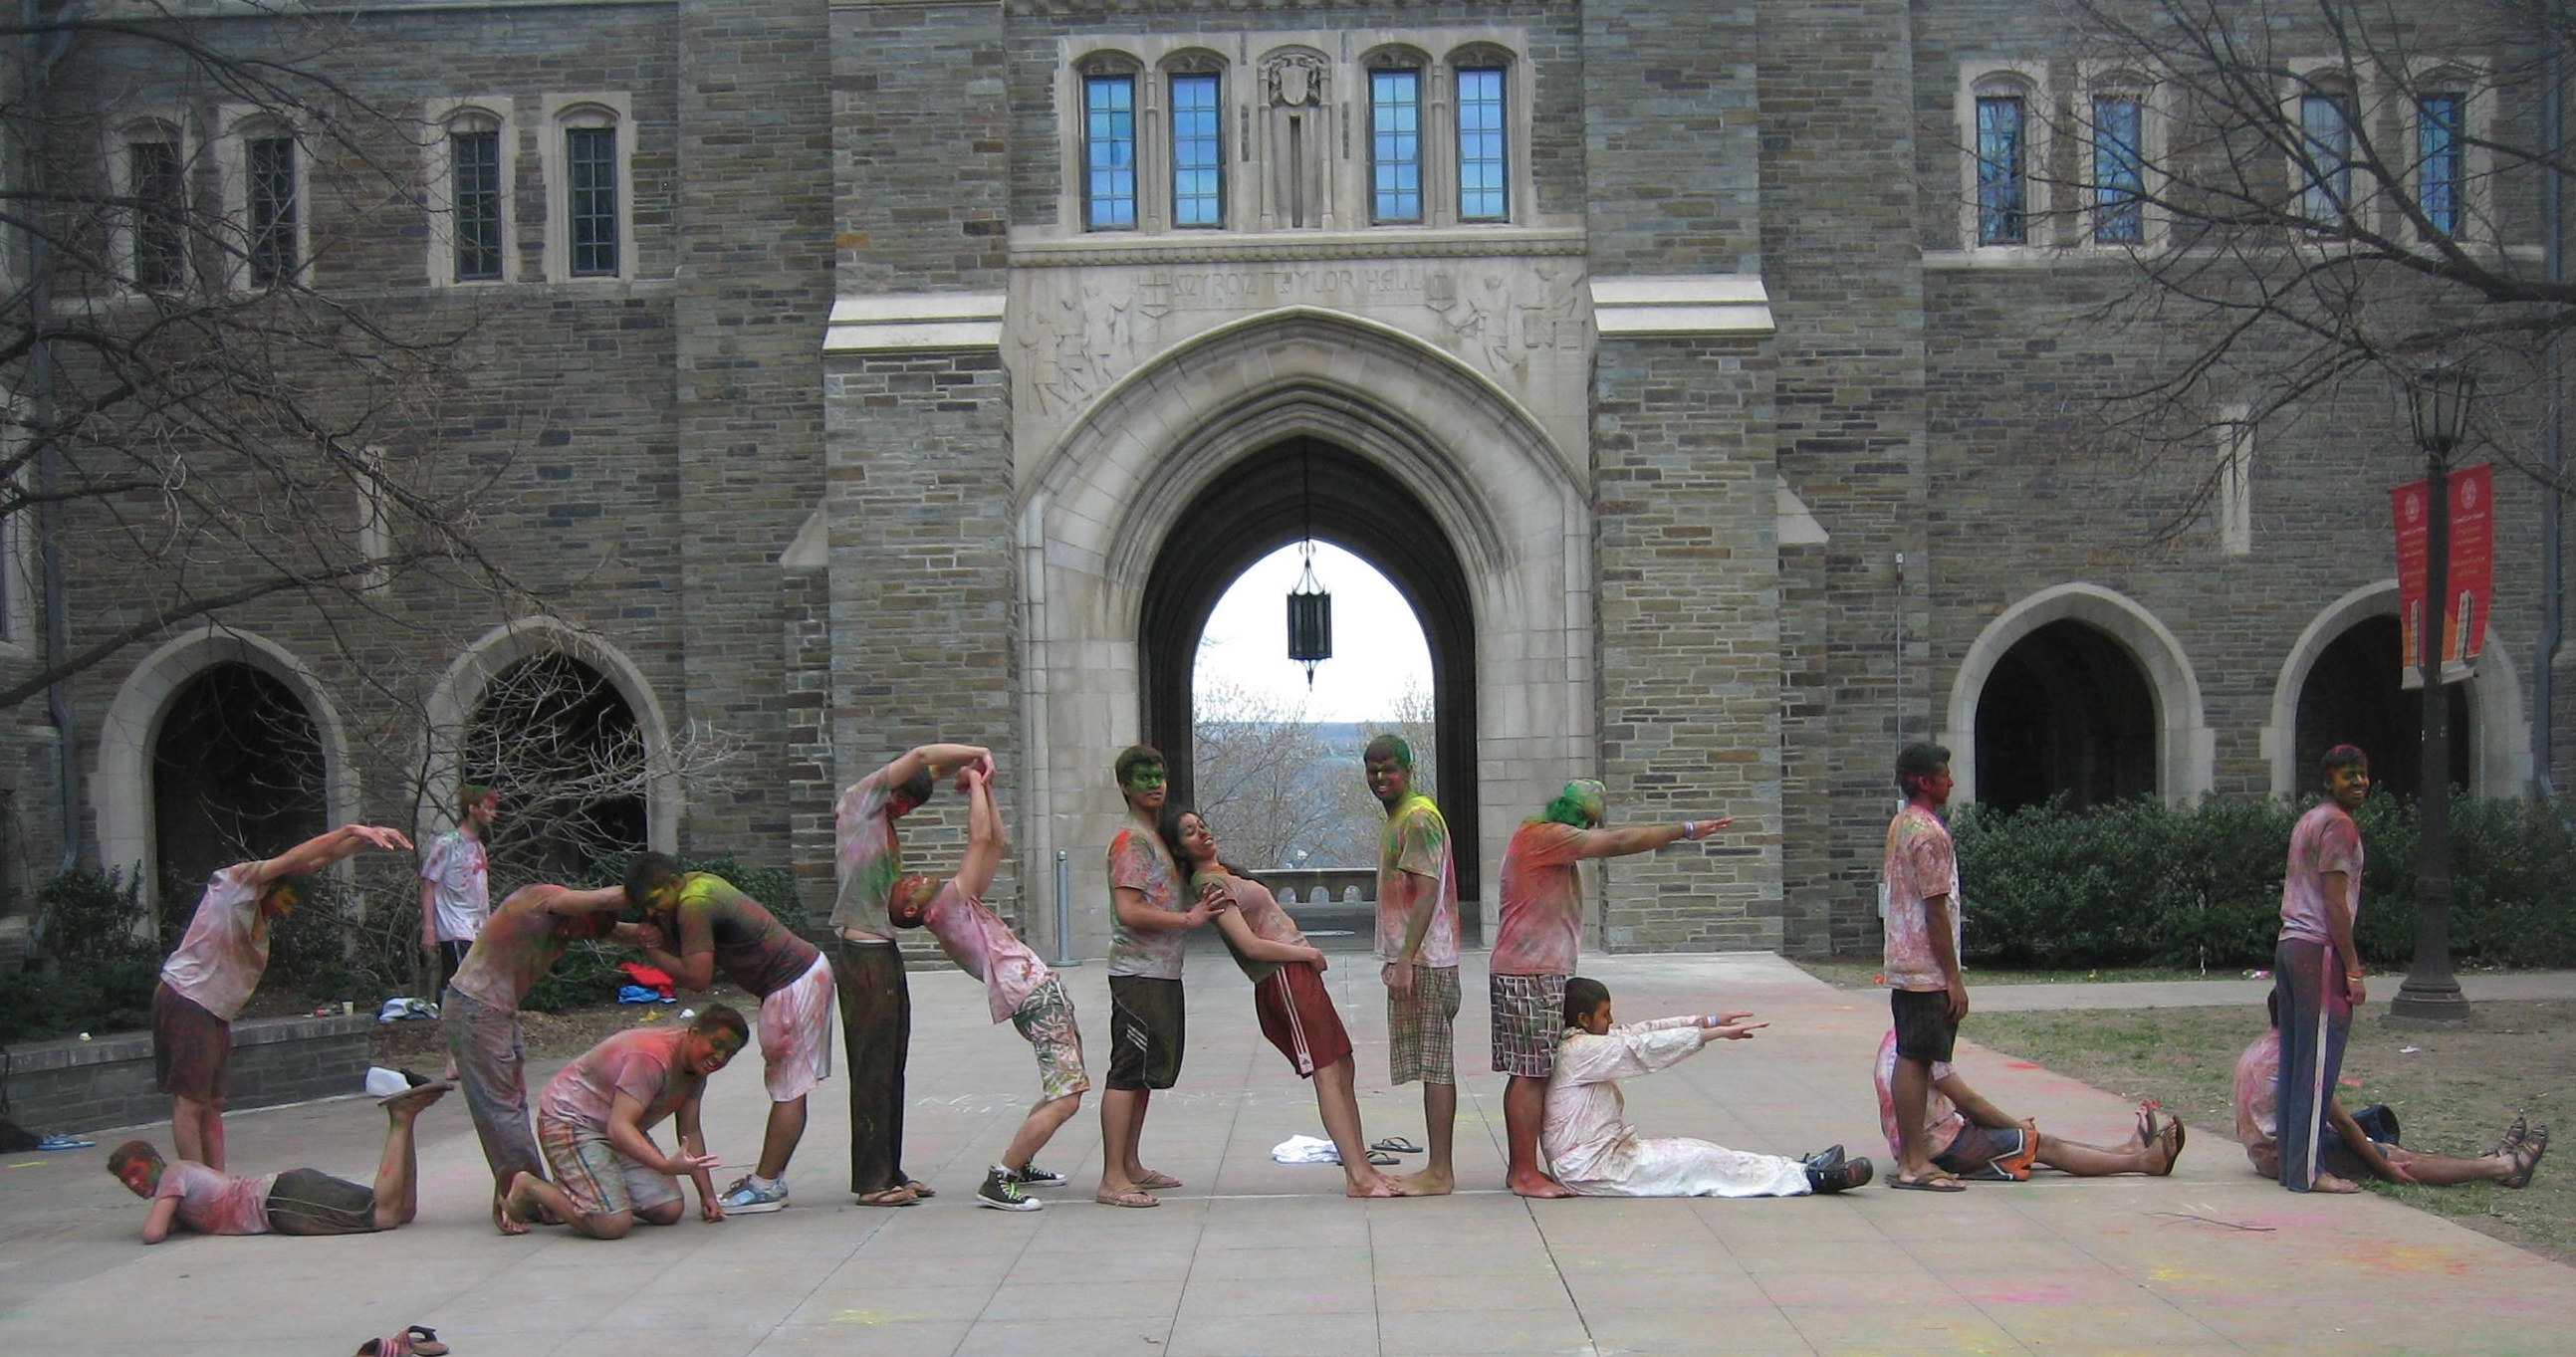 Students Spelling Out Cornell in the Courtyard